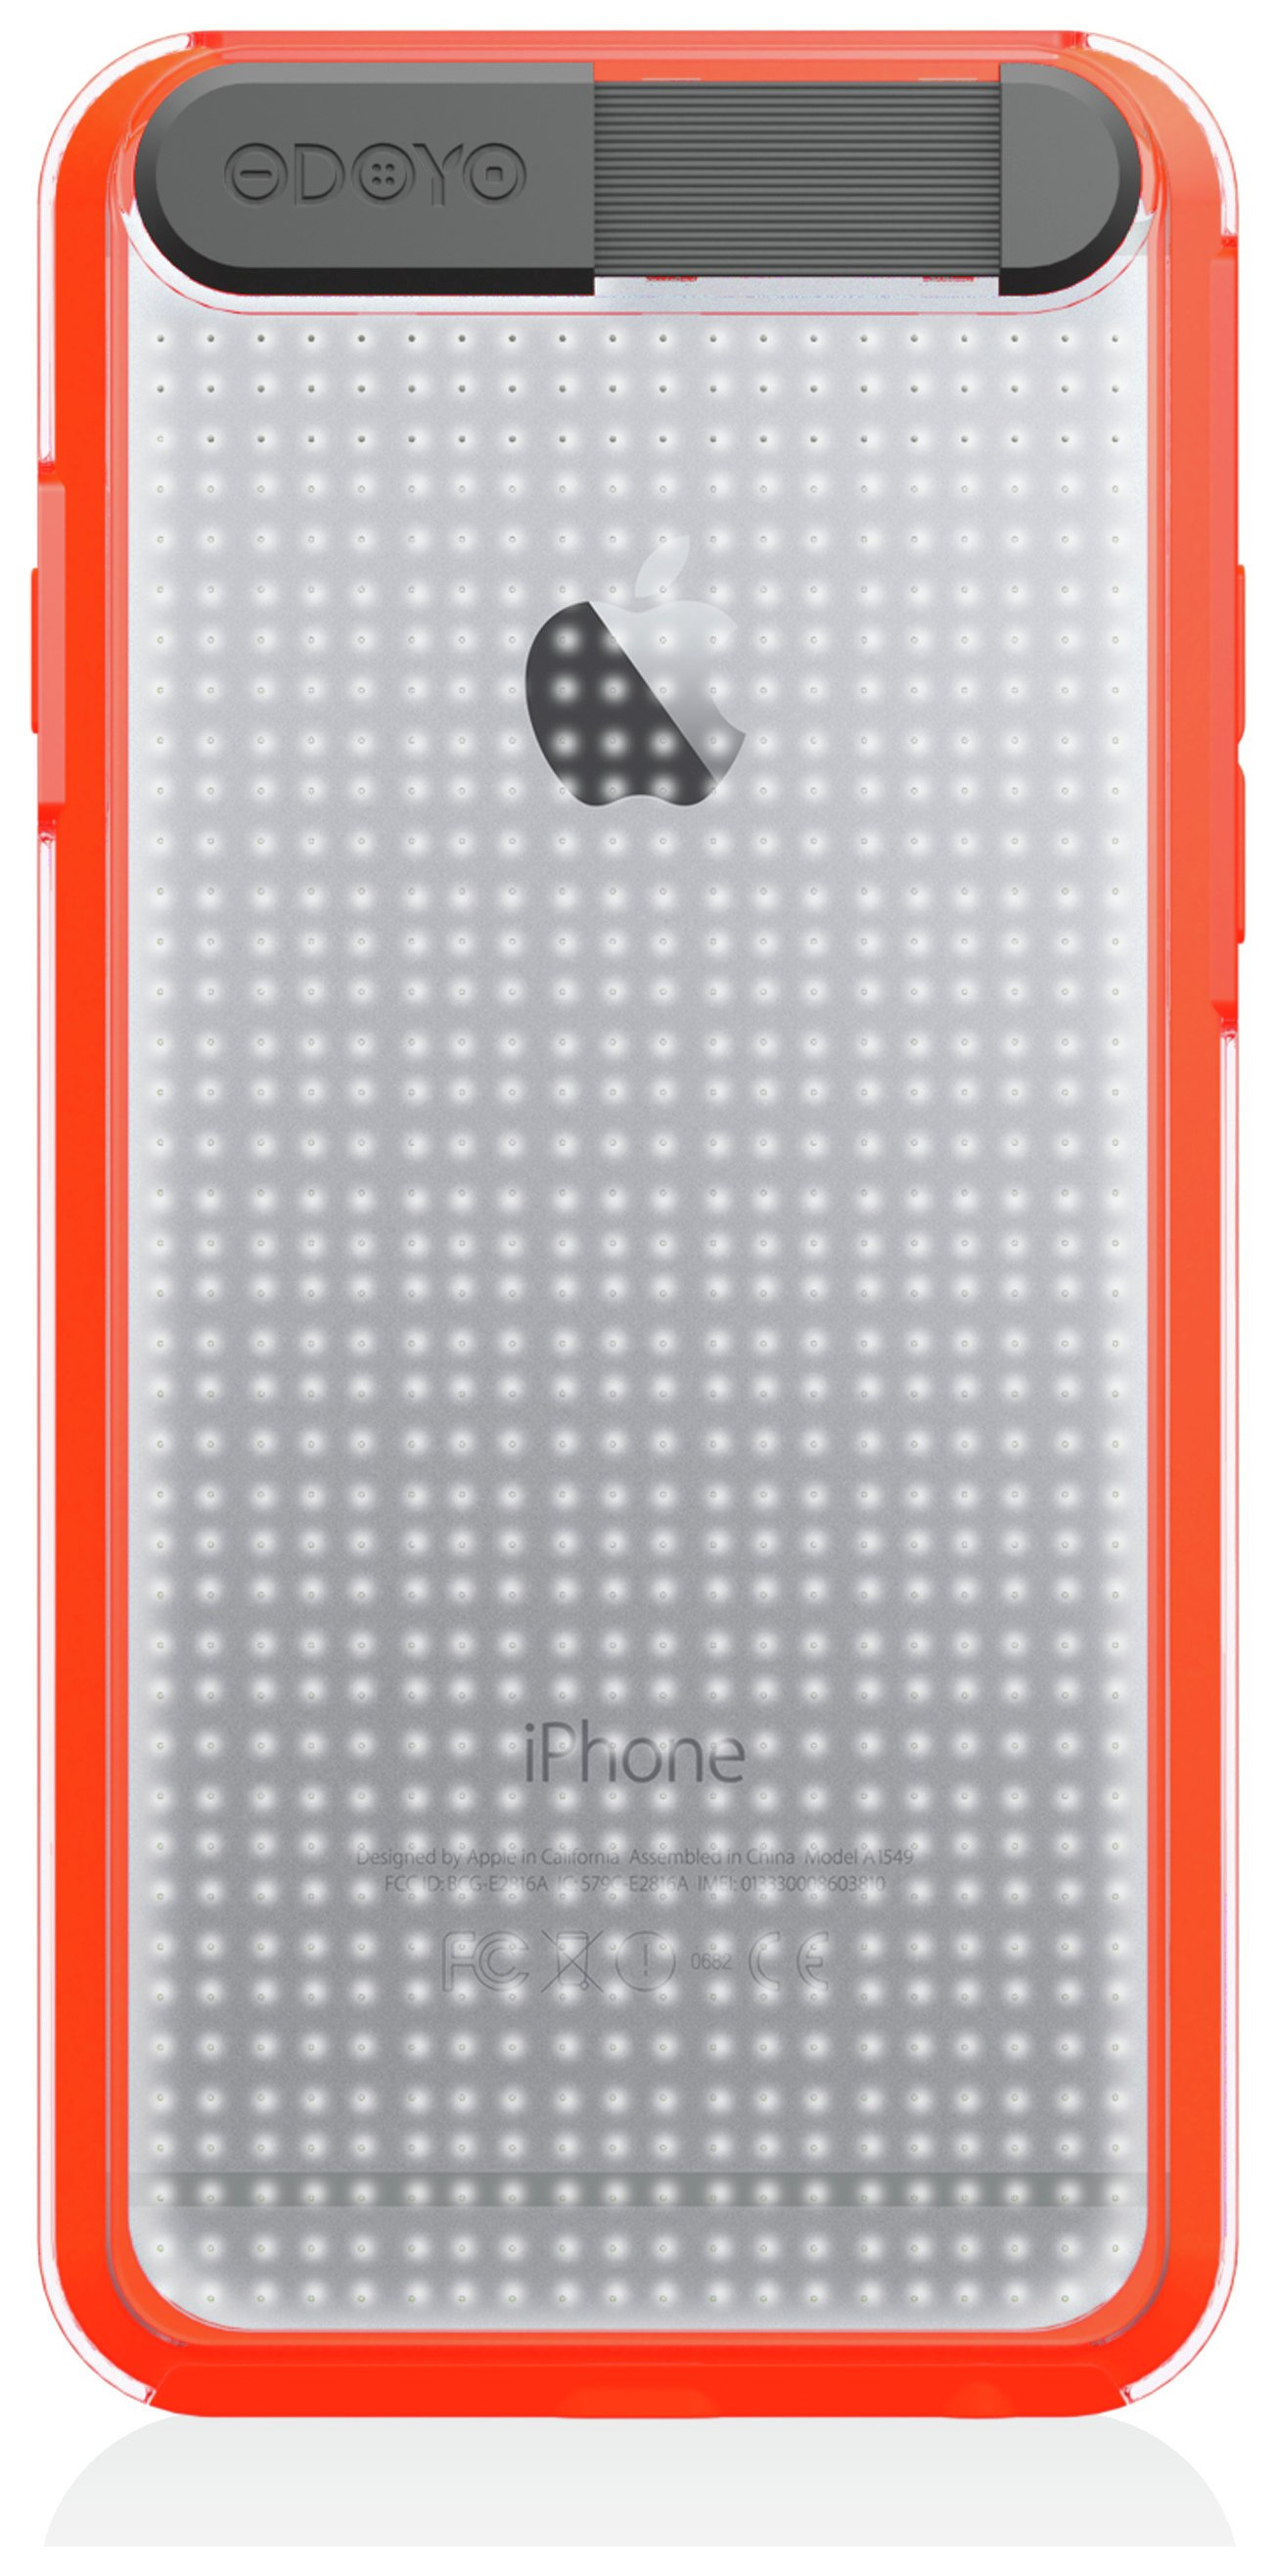 Odoyo Odoyo Flashing Case for iPhone 6 - Sunrise Orange